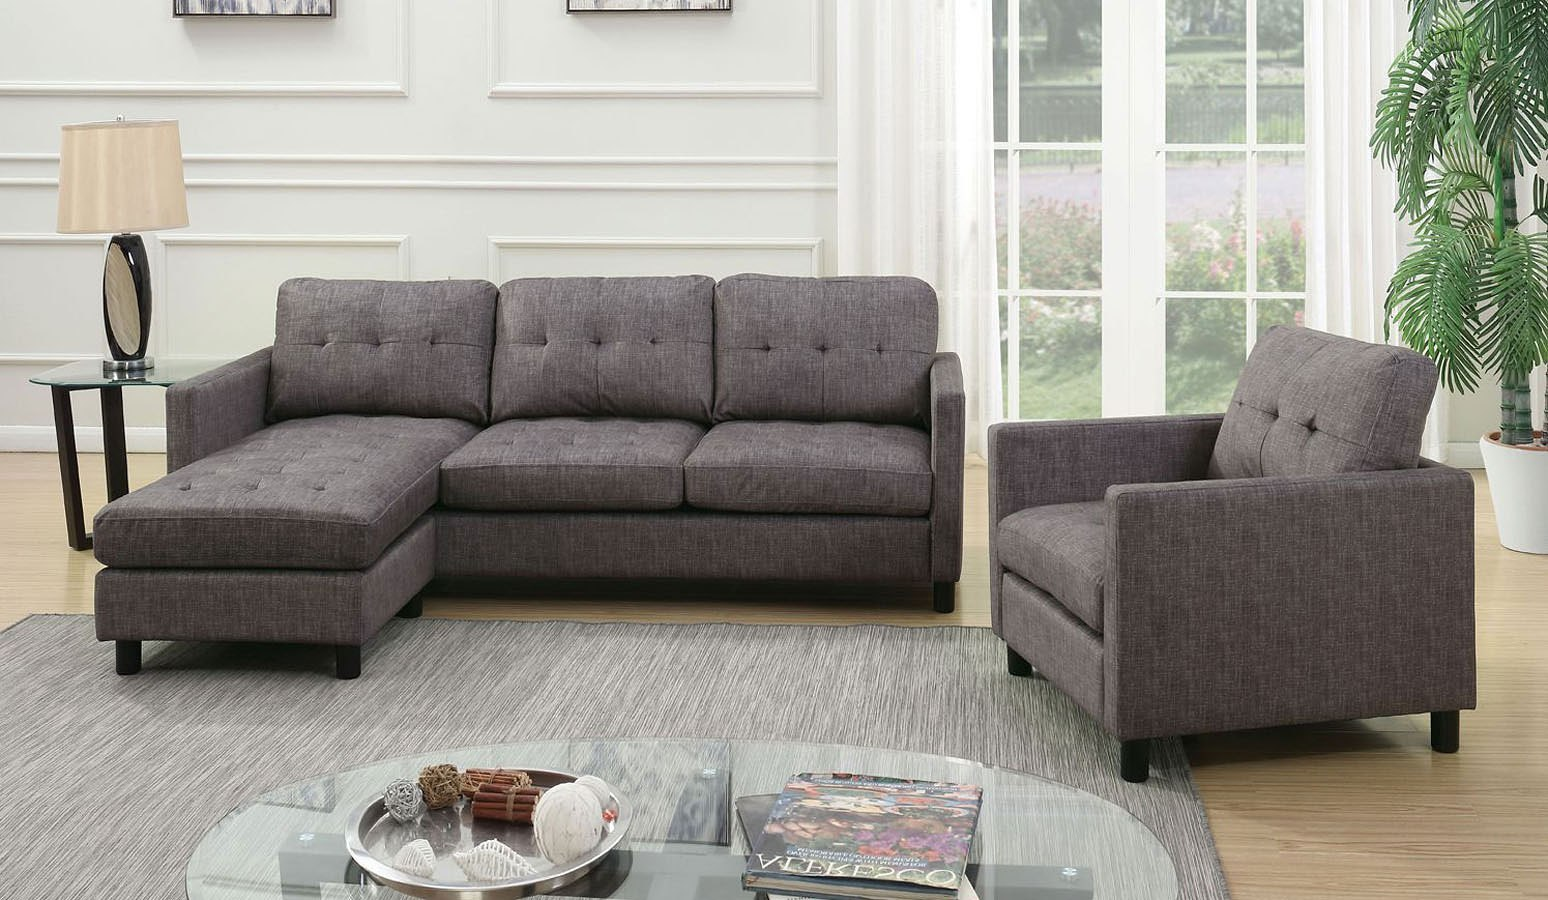 3 Piece Living Room Sofa Set: Caesar 3-Piece Living Room Set By Acme Furniture